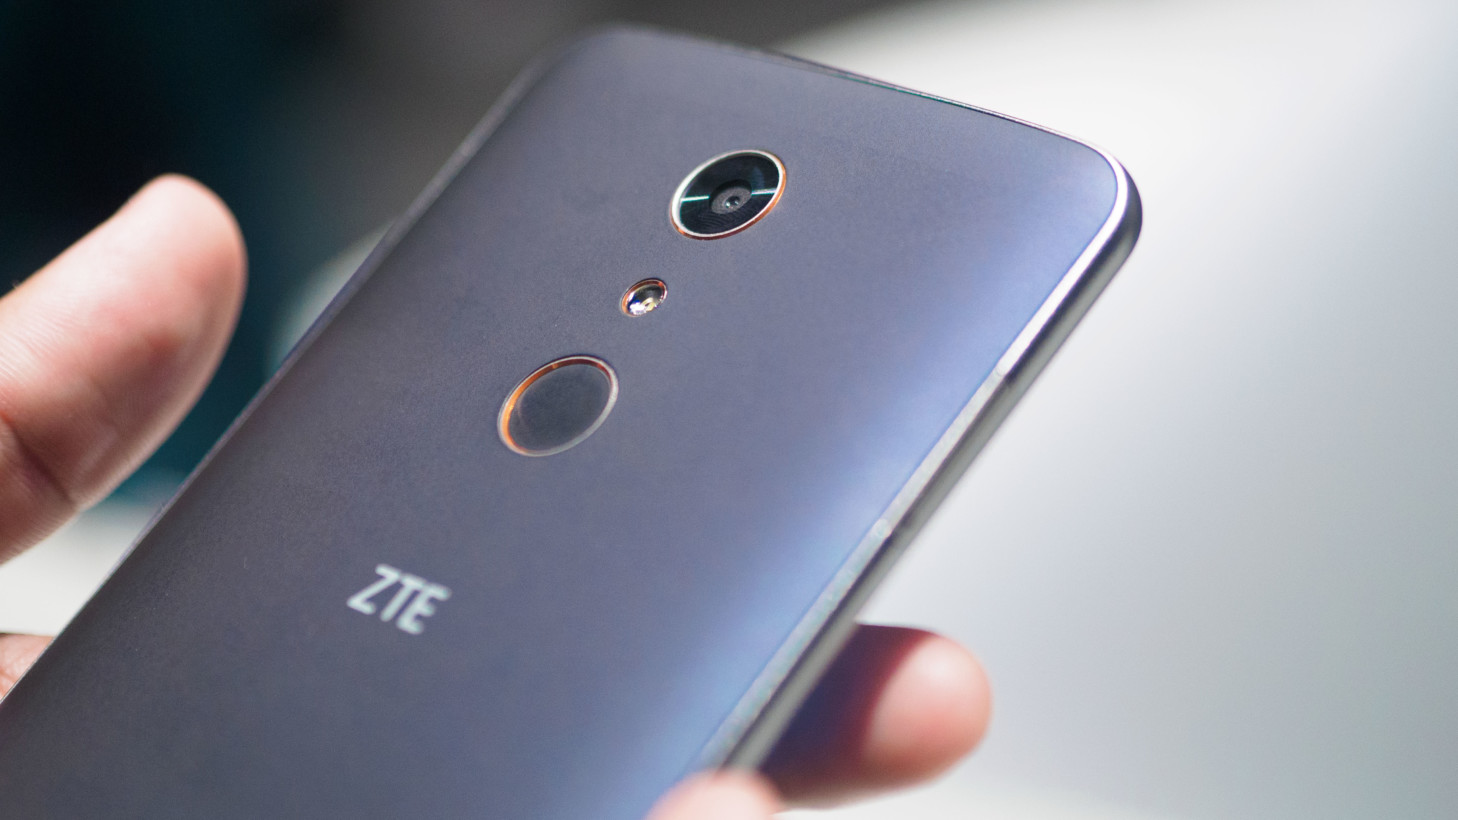 Hands-on: The ZTE ZMAX Pro is a whole lot of phone for $99